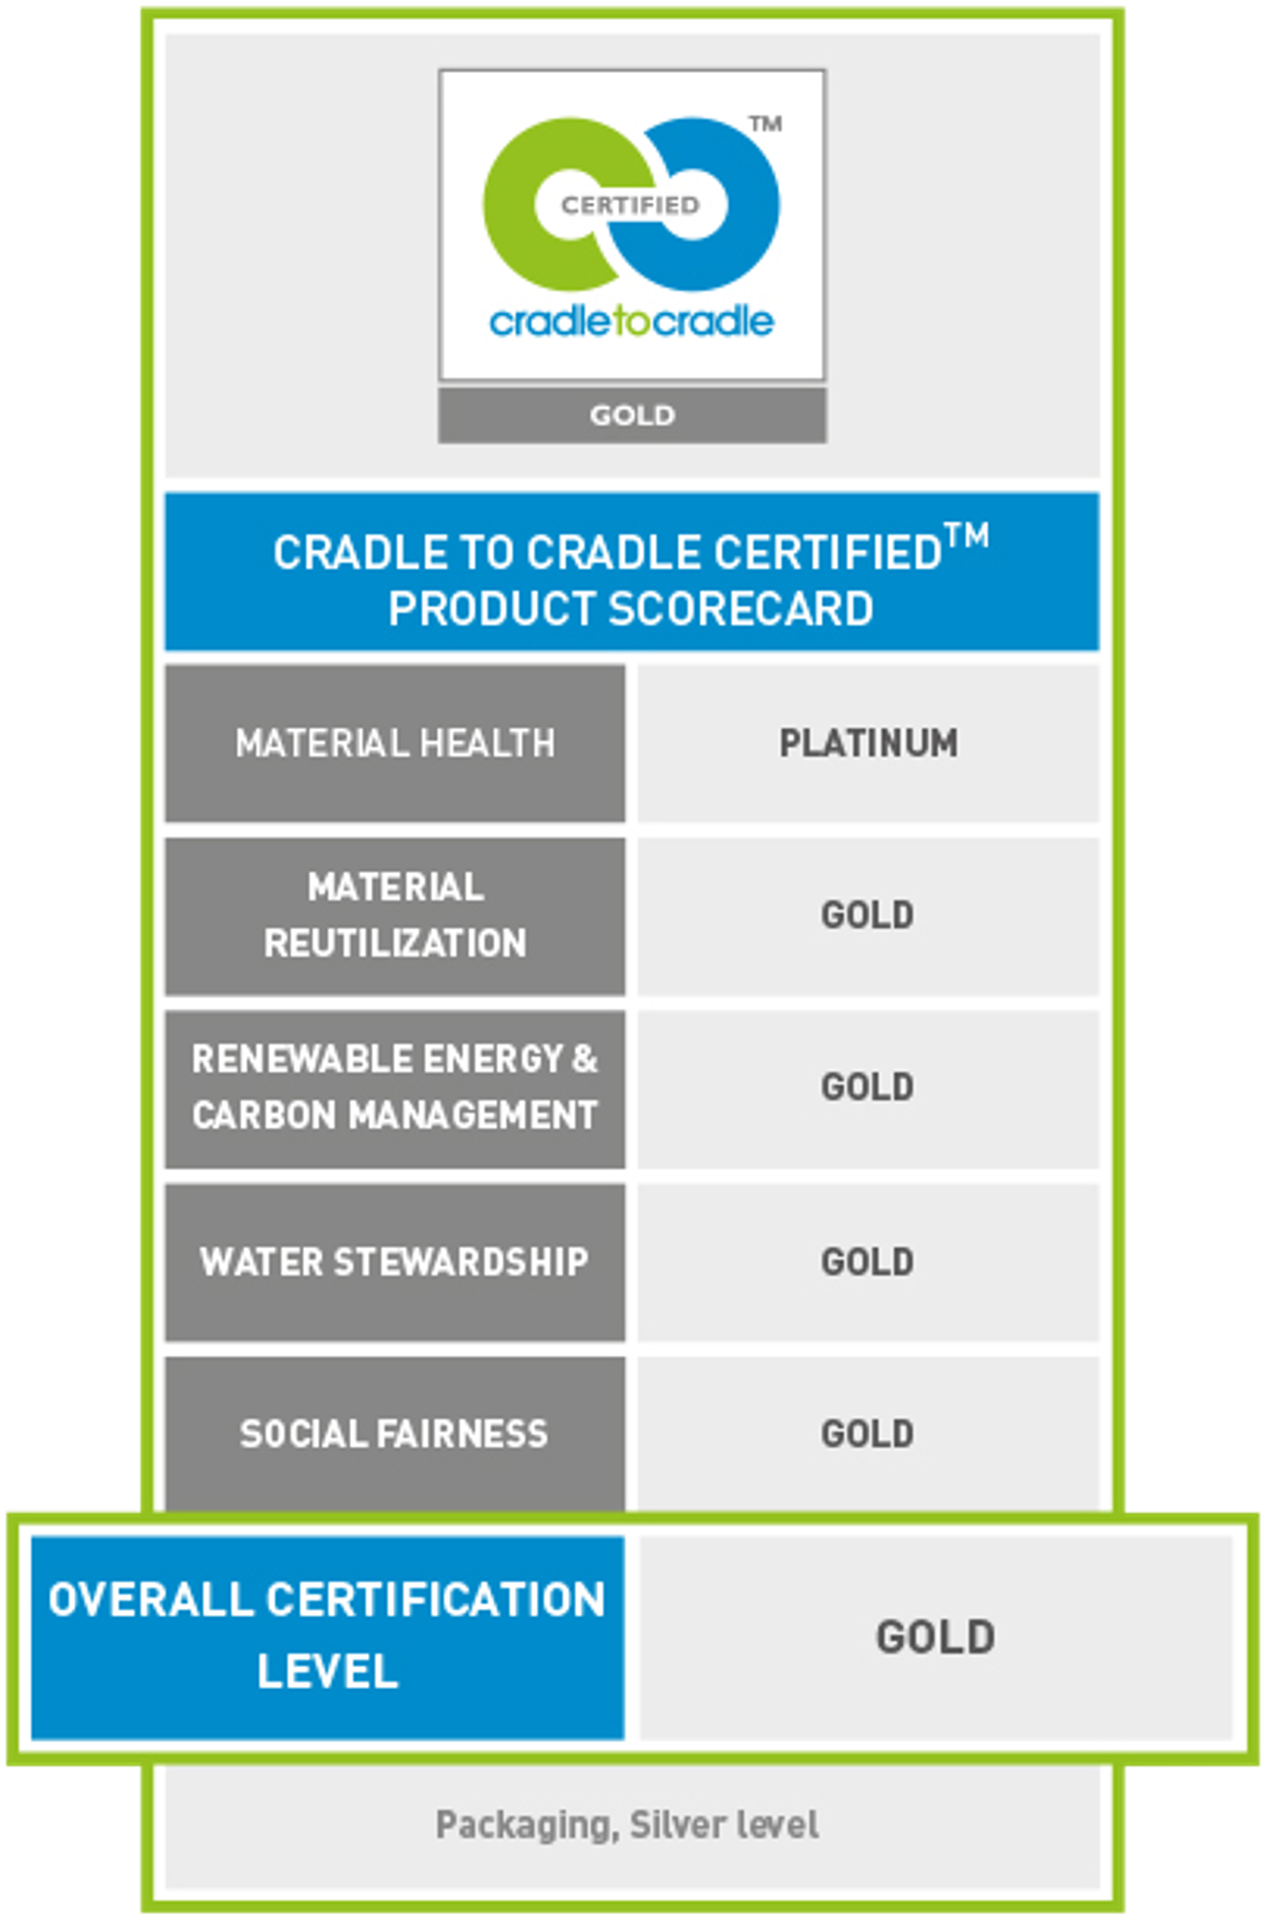 werner mertz professional développement durable cradle to cradle c2c score card certification globale or